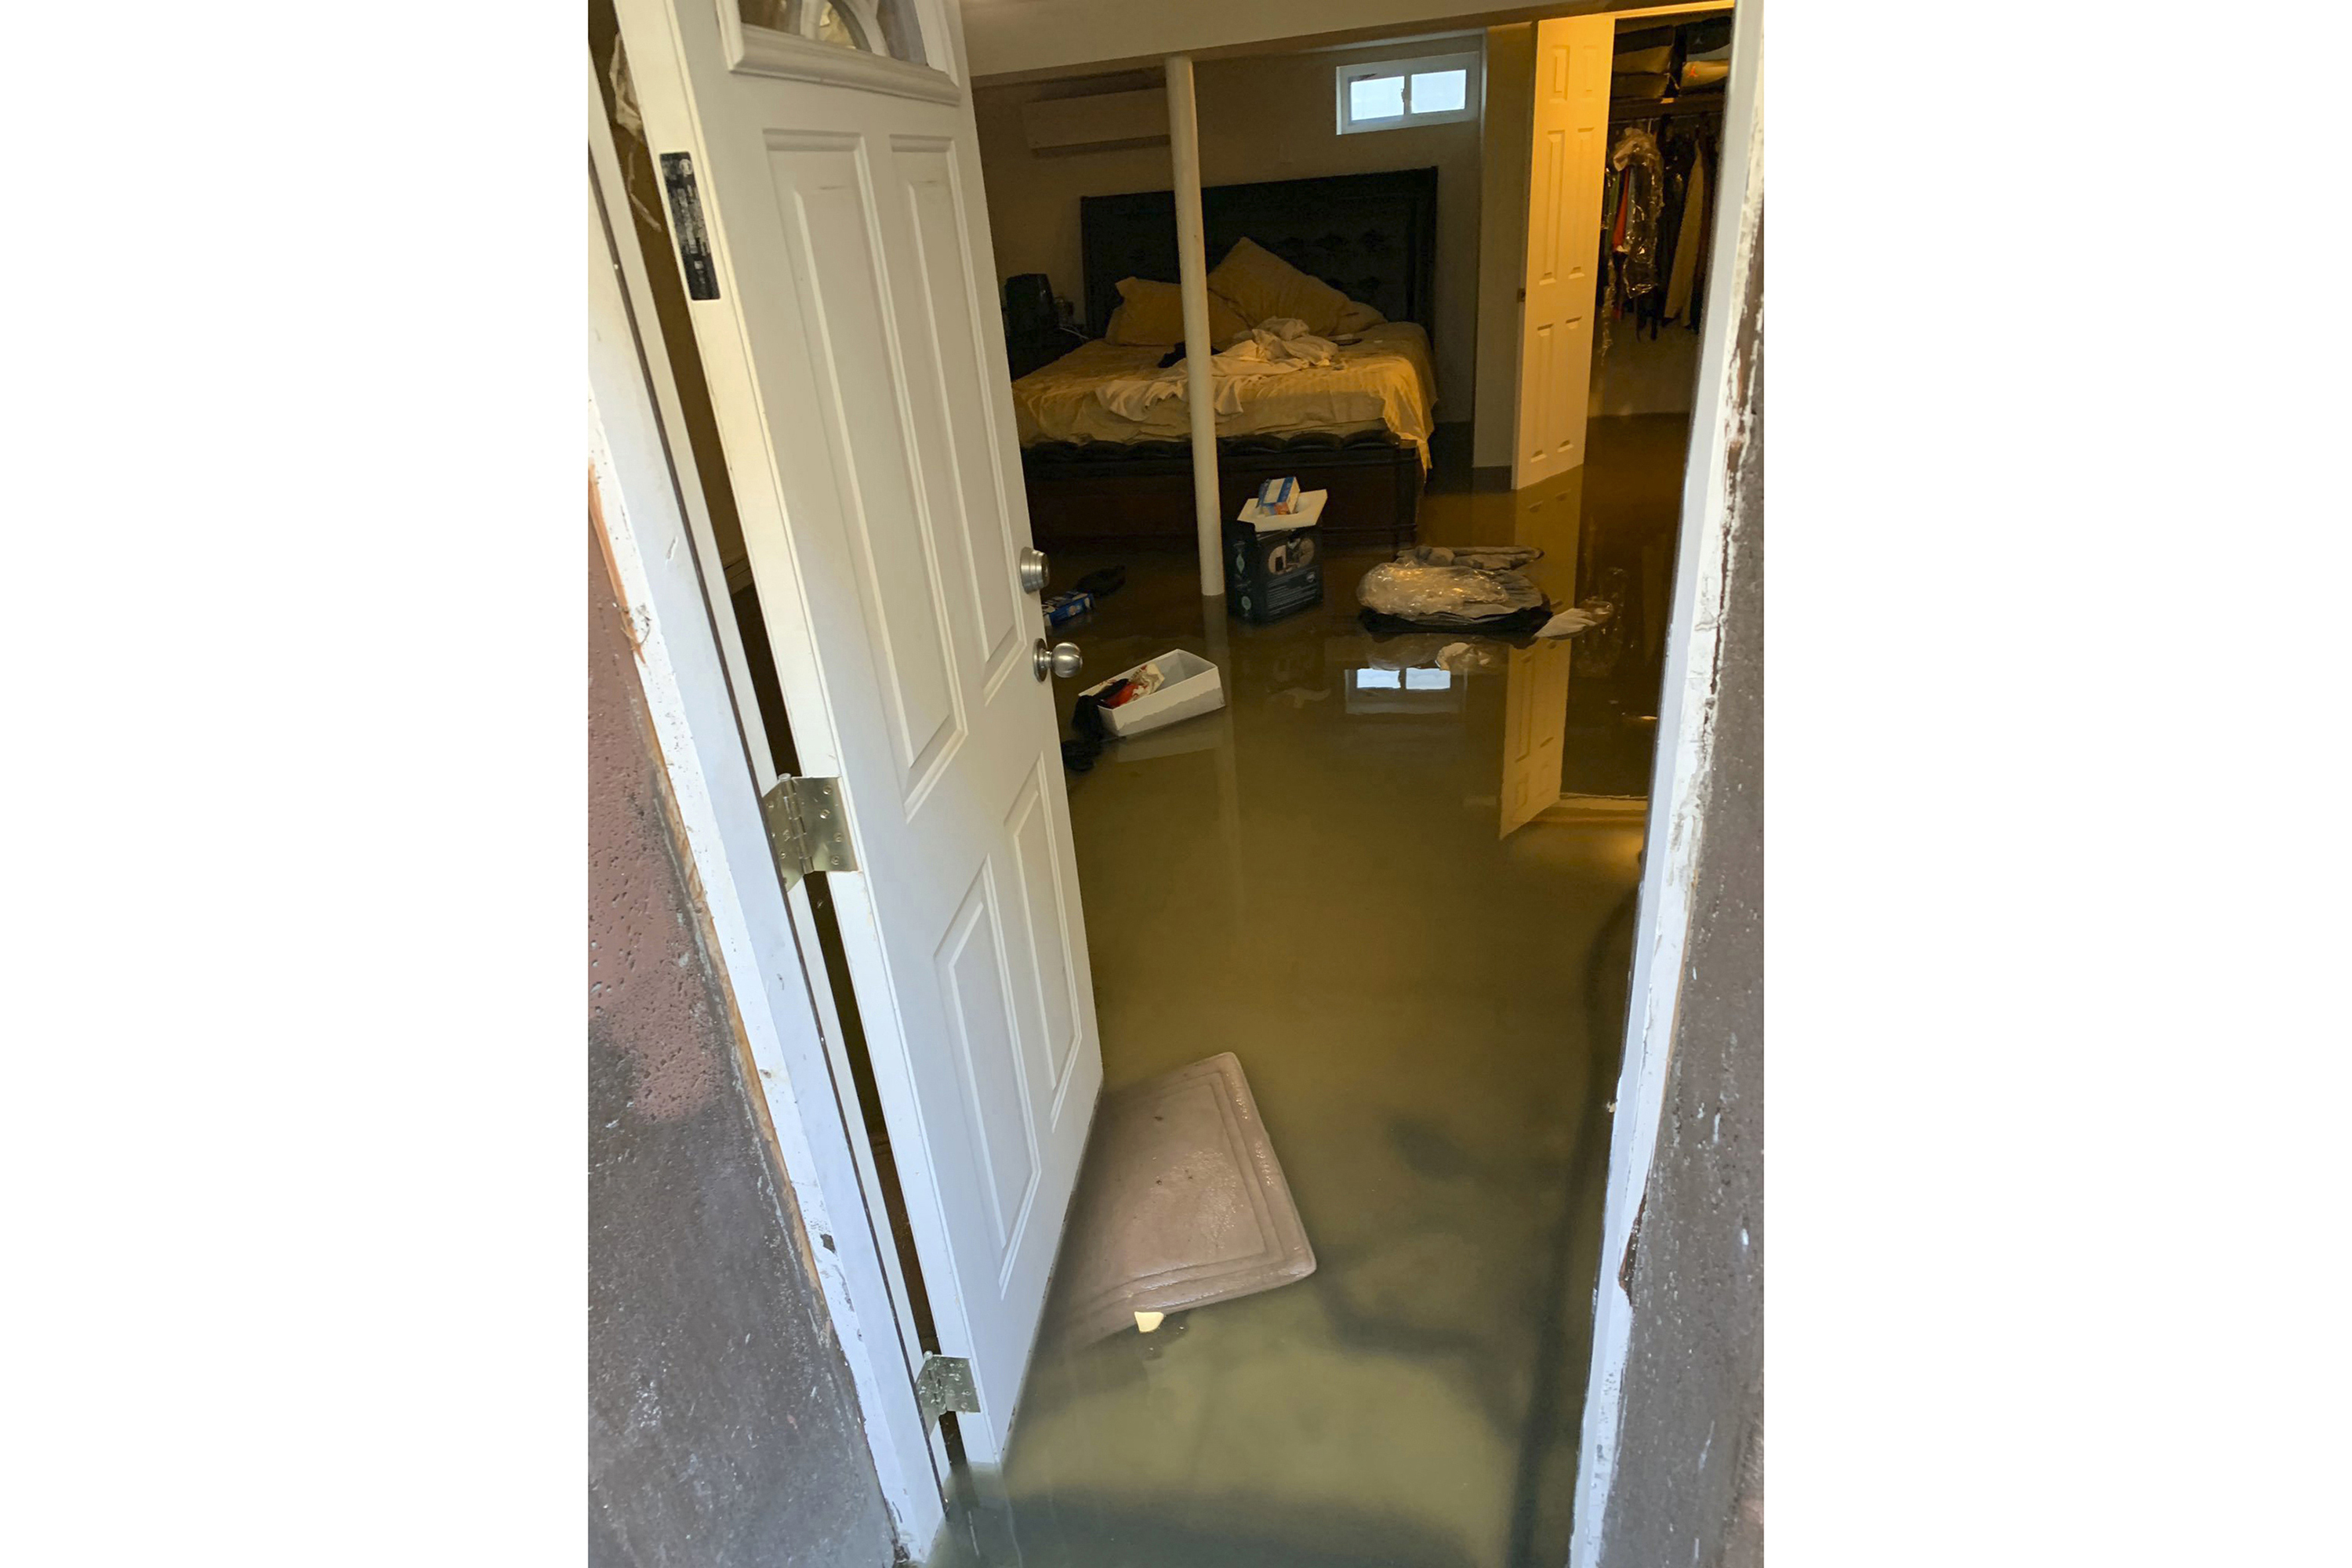 In this photo provided by Cynthia McKenzie is sewage backup that flooded her home on Nov. 30, 2019, in the Jamaica, Queens section of New York. Officials say a water condition is causing human waste to back up into several hundred homes in the area there.